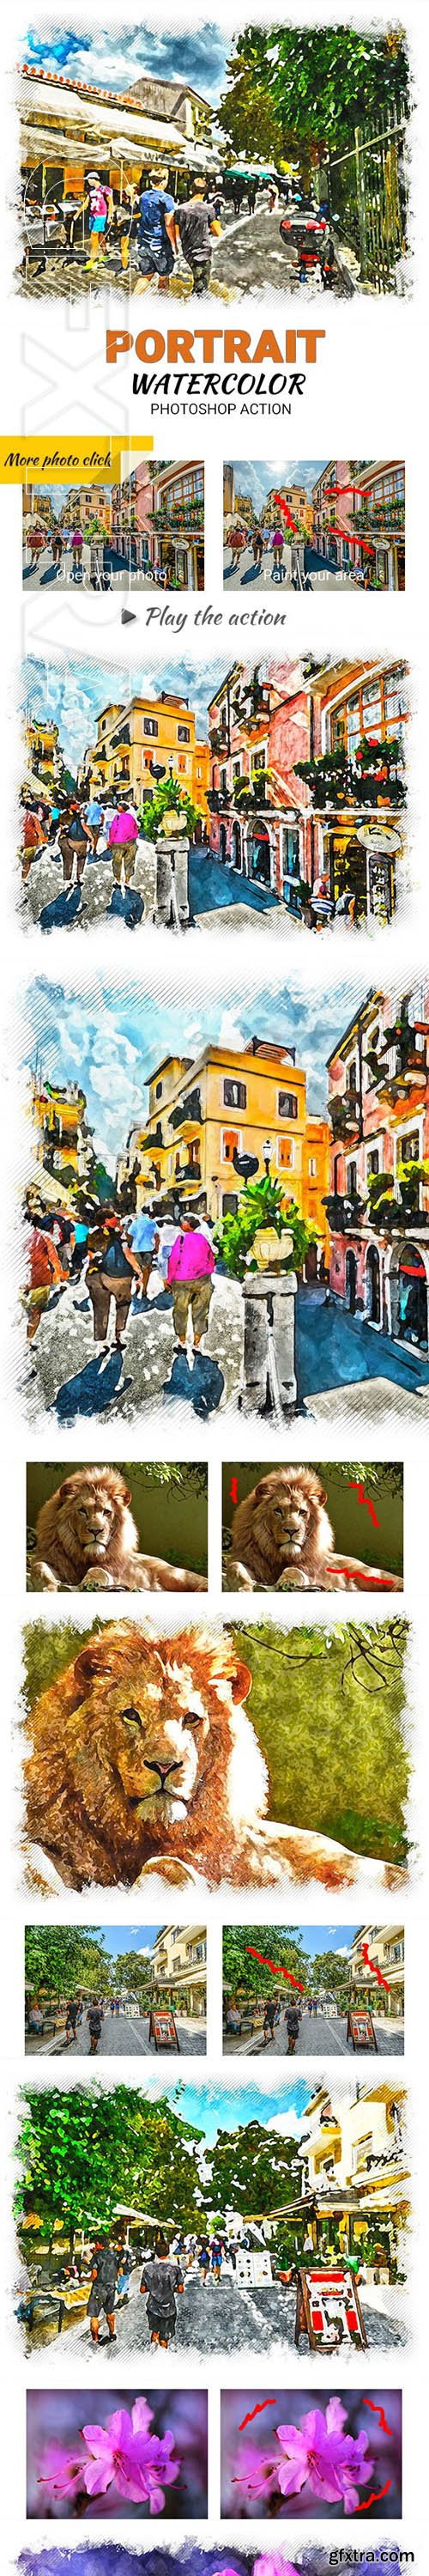 GraphicRiver - Portrait Watercolor Photoshop Action 23650966